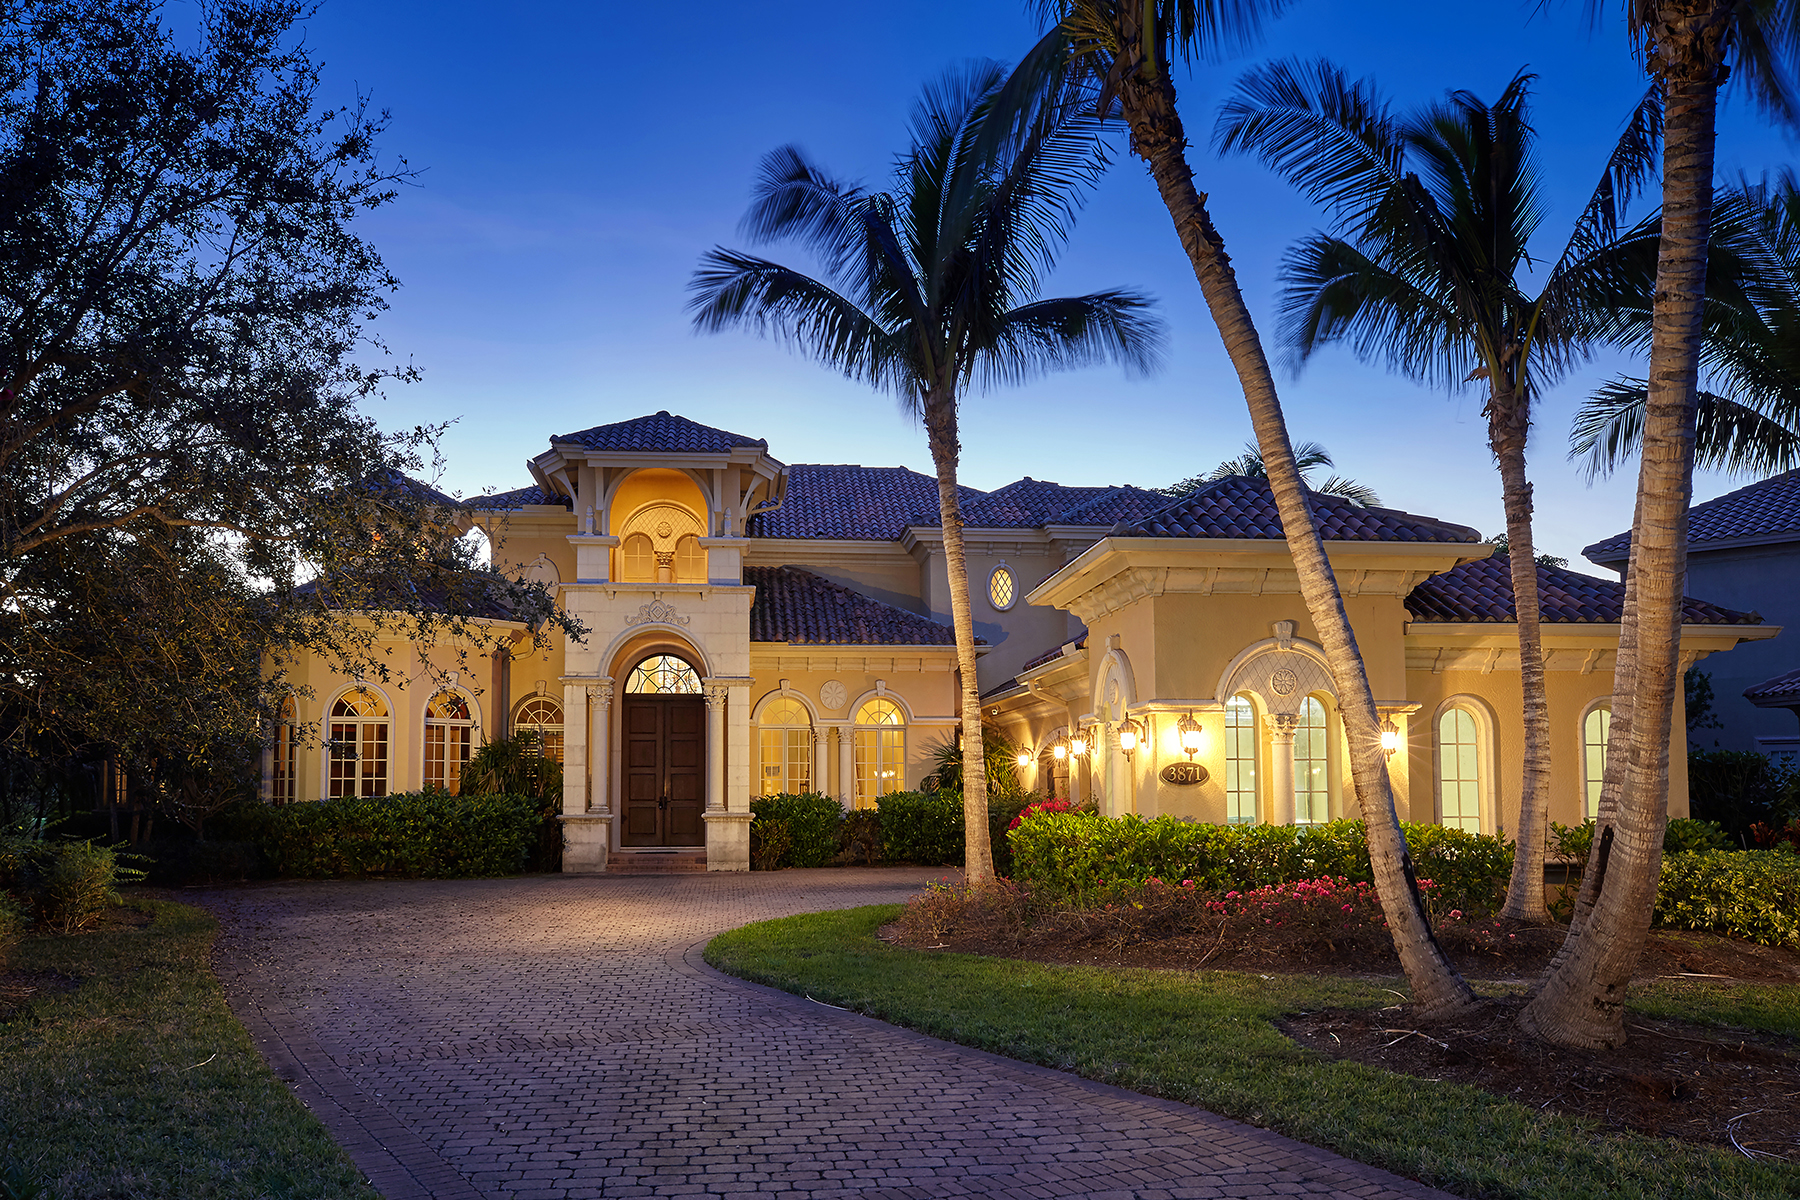 Single Family Home for Sale at FIDDLERS CREEK 3871 Isla Del Sol Way, Naples, Florida 34114 United States